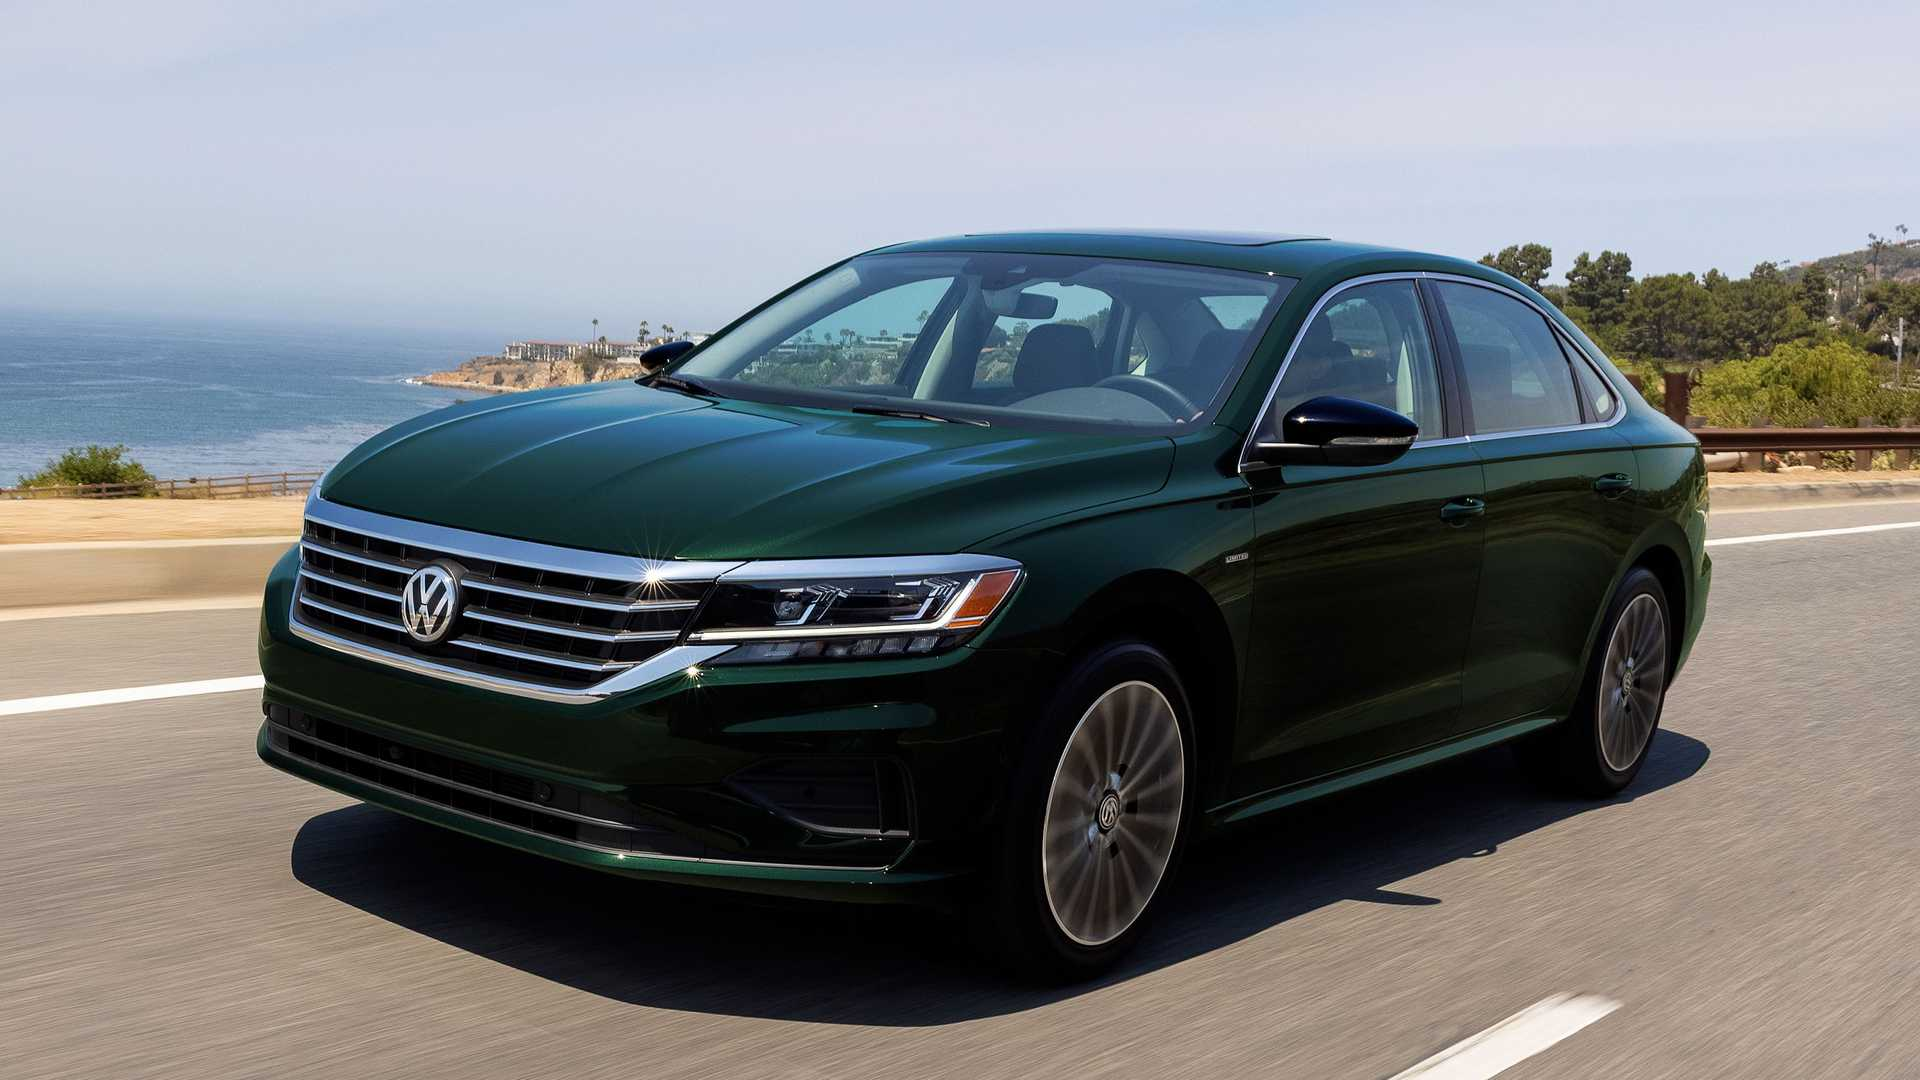 Hasta La Passat-sta: One Of The Best Selling Sedans Of All Time Is Done To Make Way For EV Production